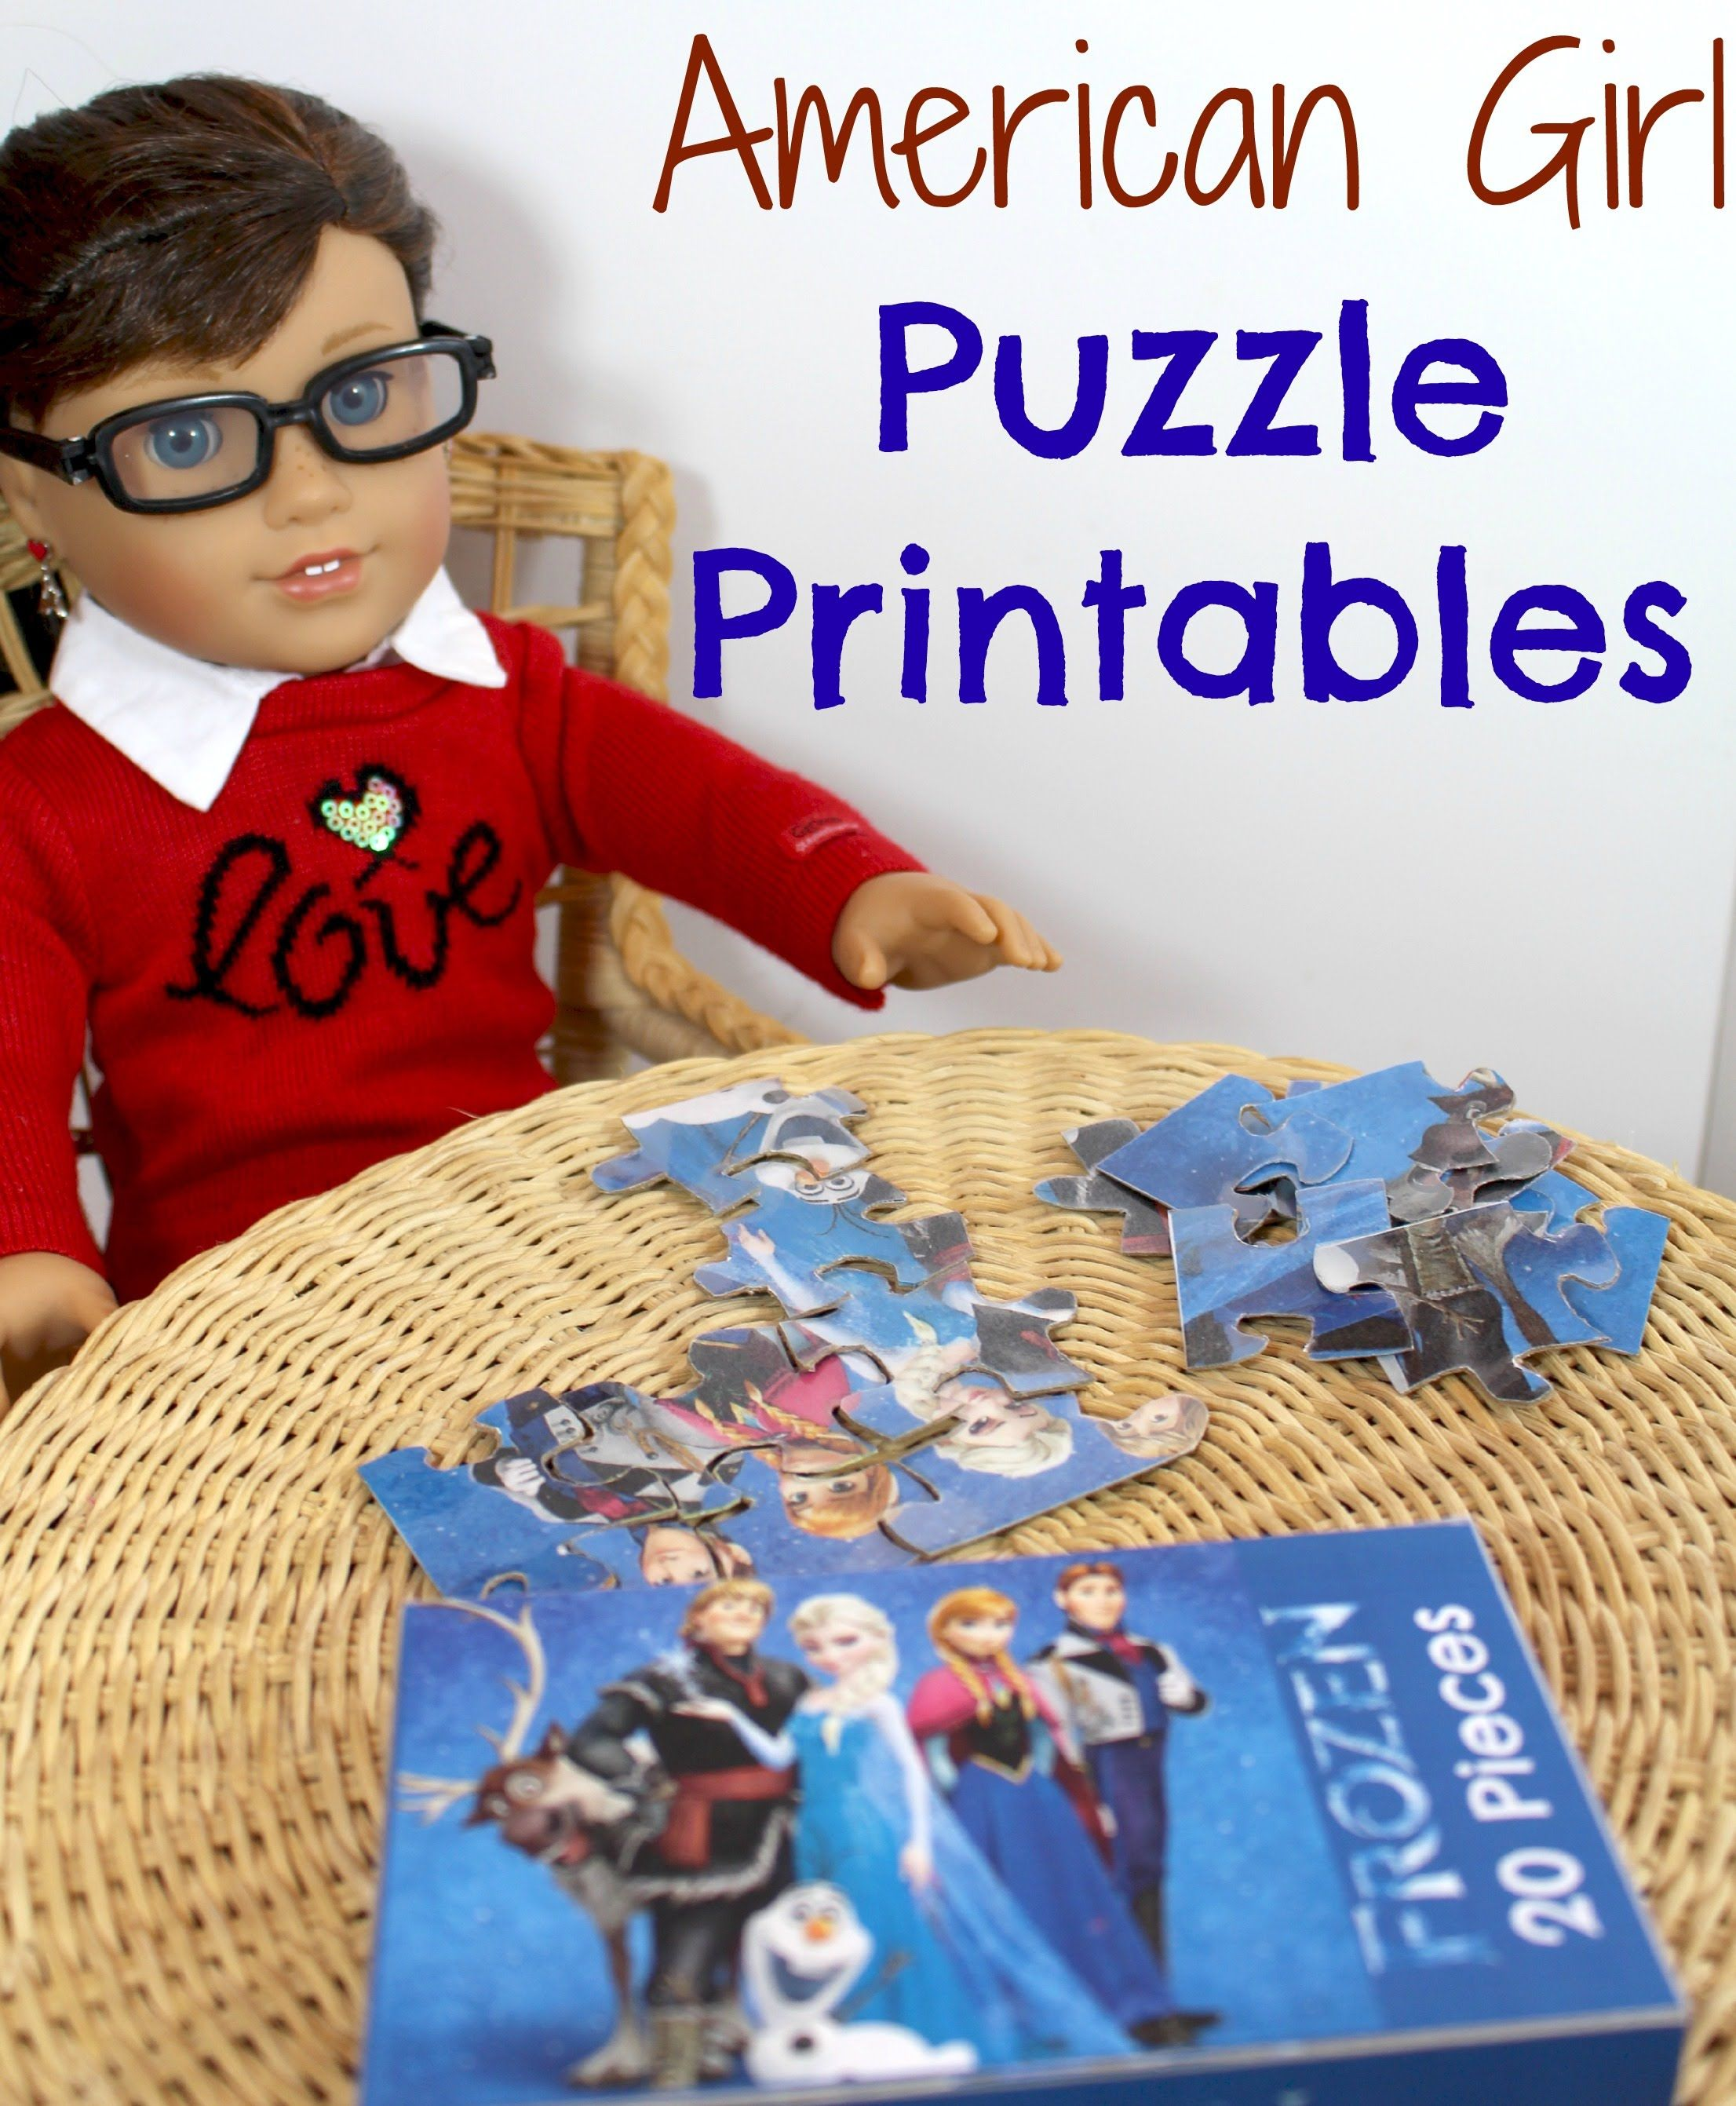 How To Make American Girl Doll Puzzles